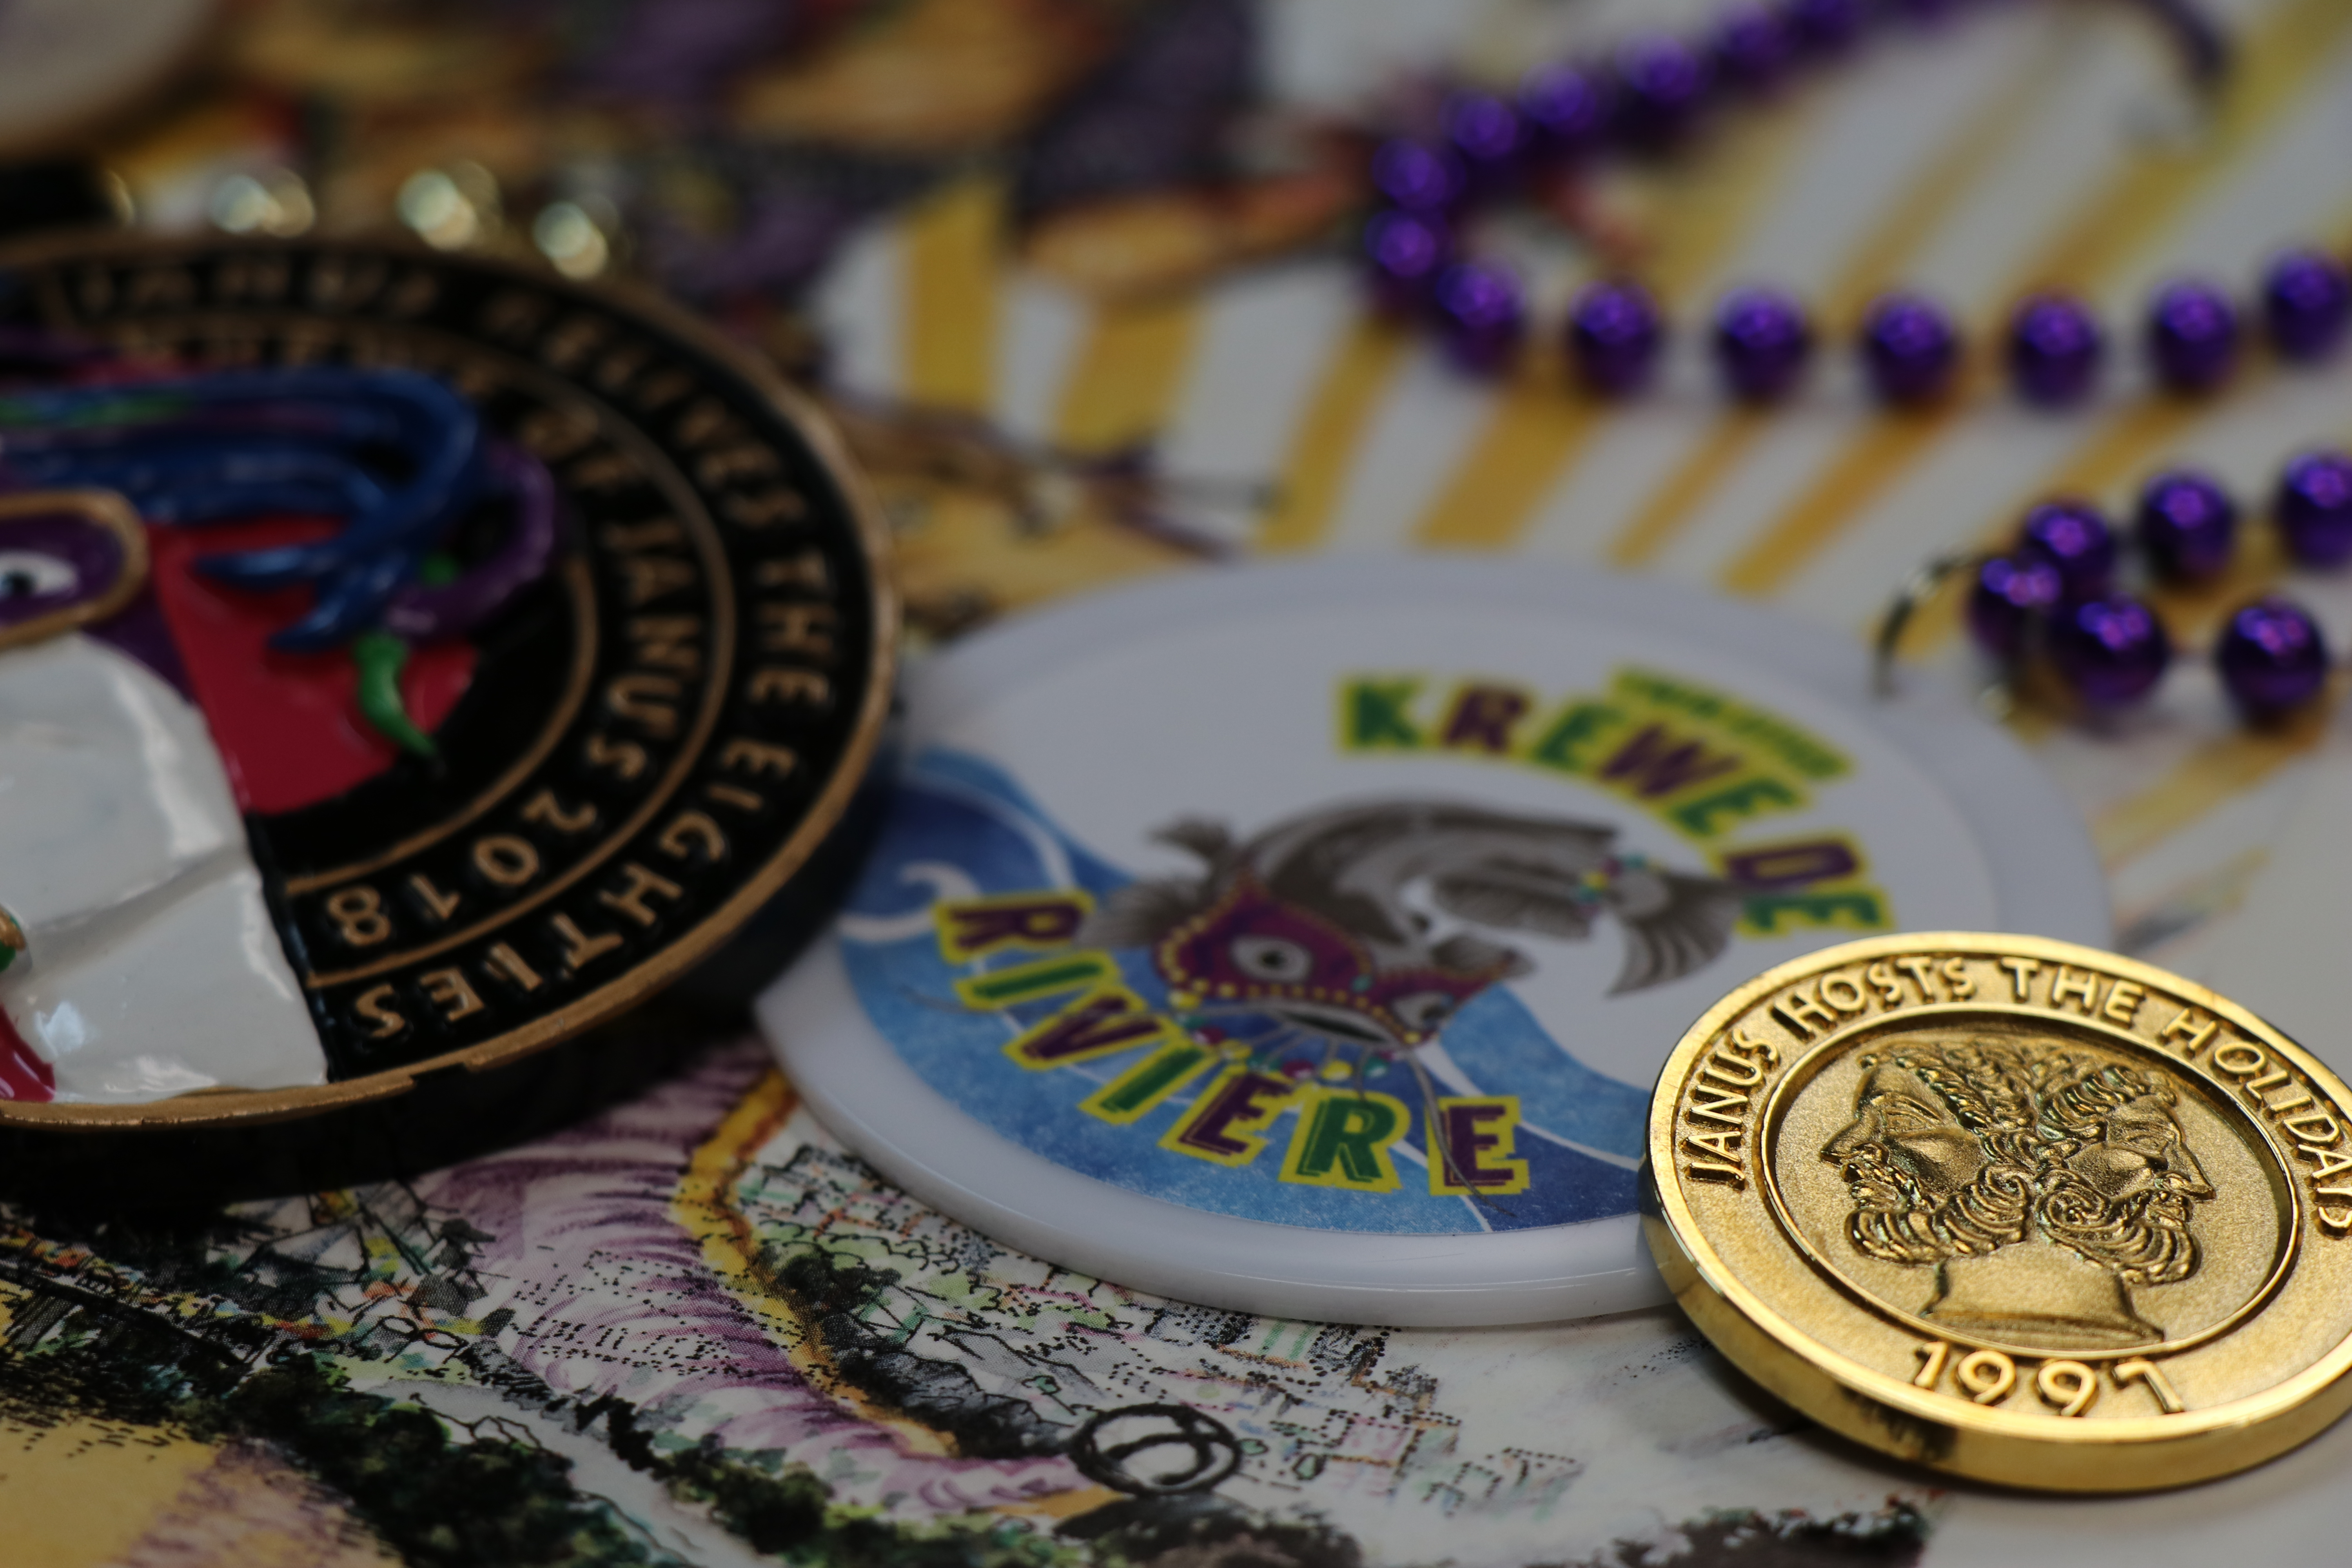 Mardi Gras doubloons and beads are arranged artfully on a table.